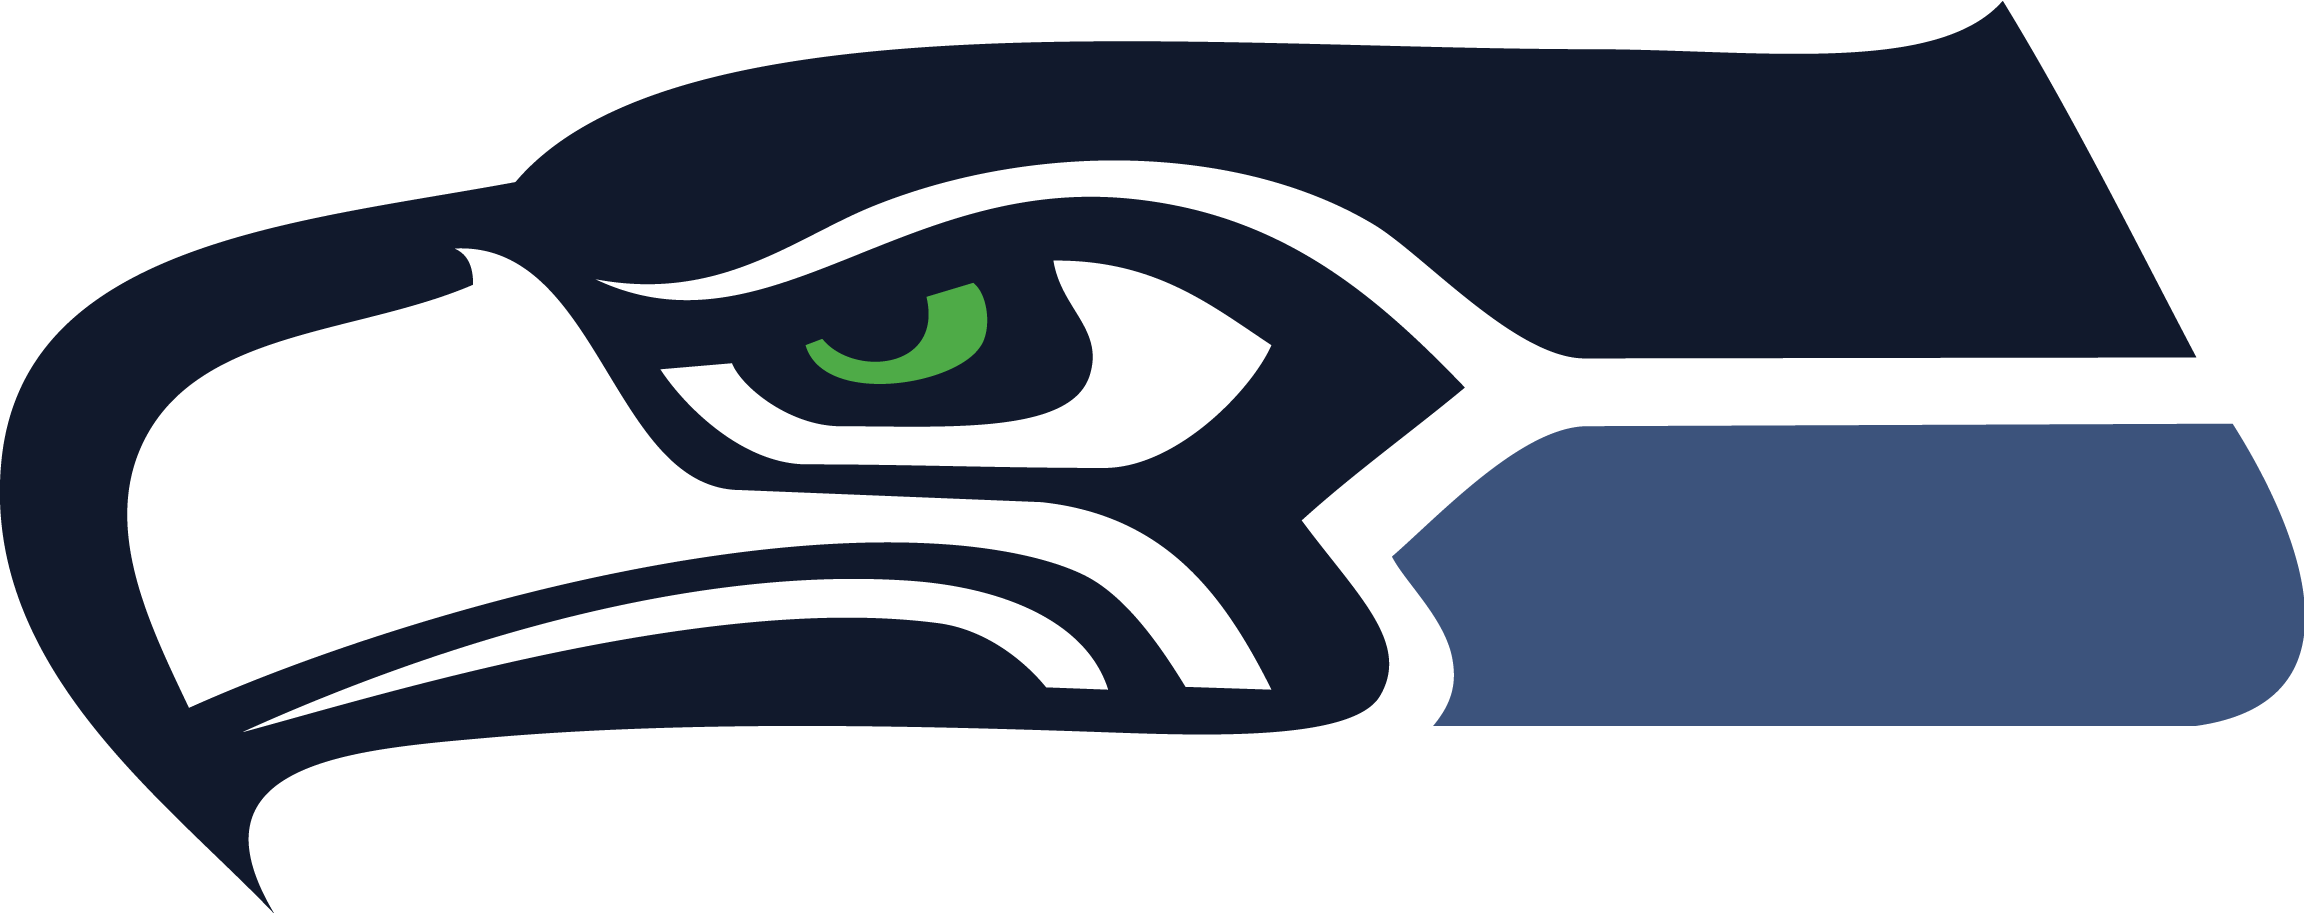 seattle seahawks clipart at getdrawings com free for personal use rh getdrawings com